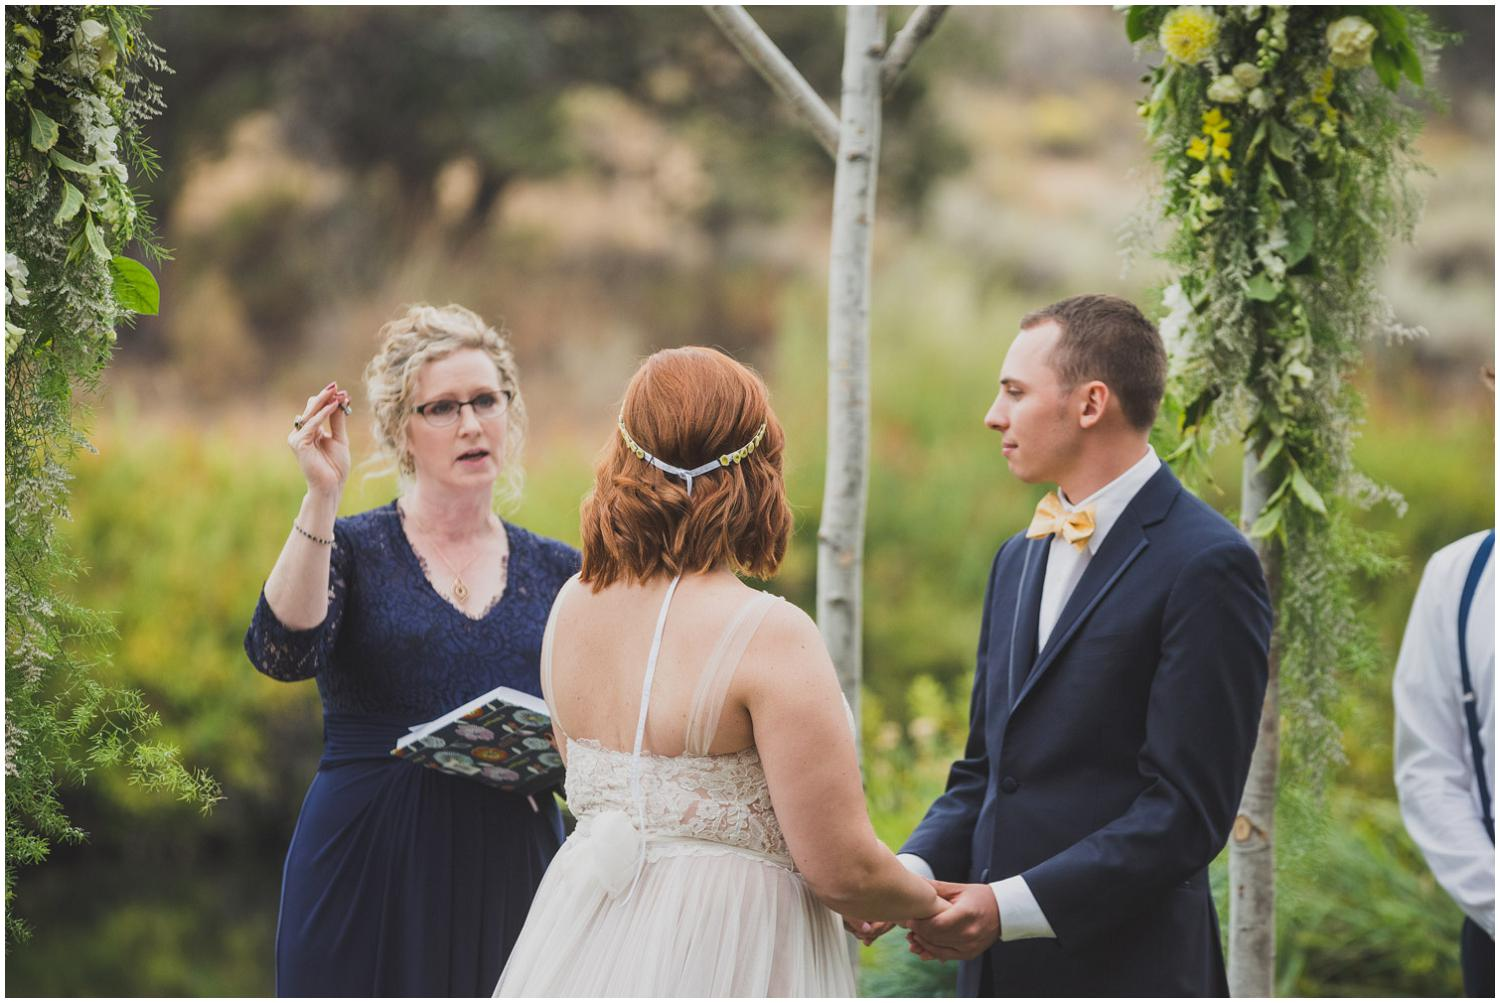 officiant holding up wedding rings while describing meaning and importance